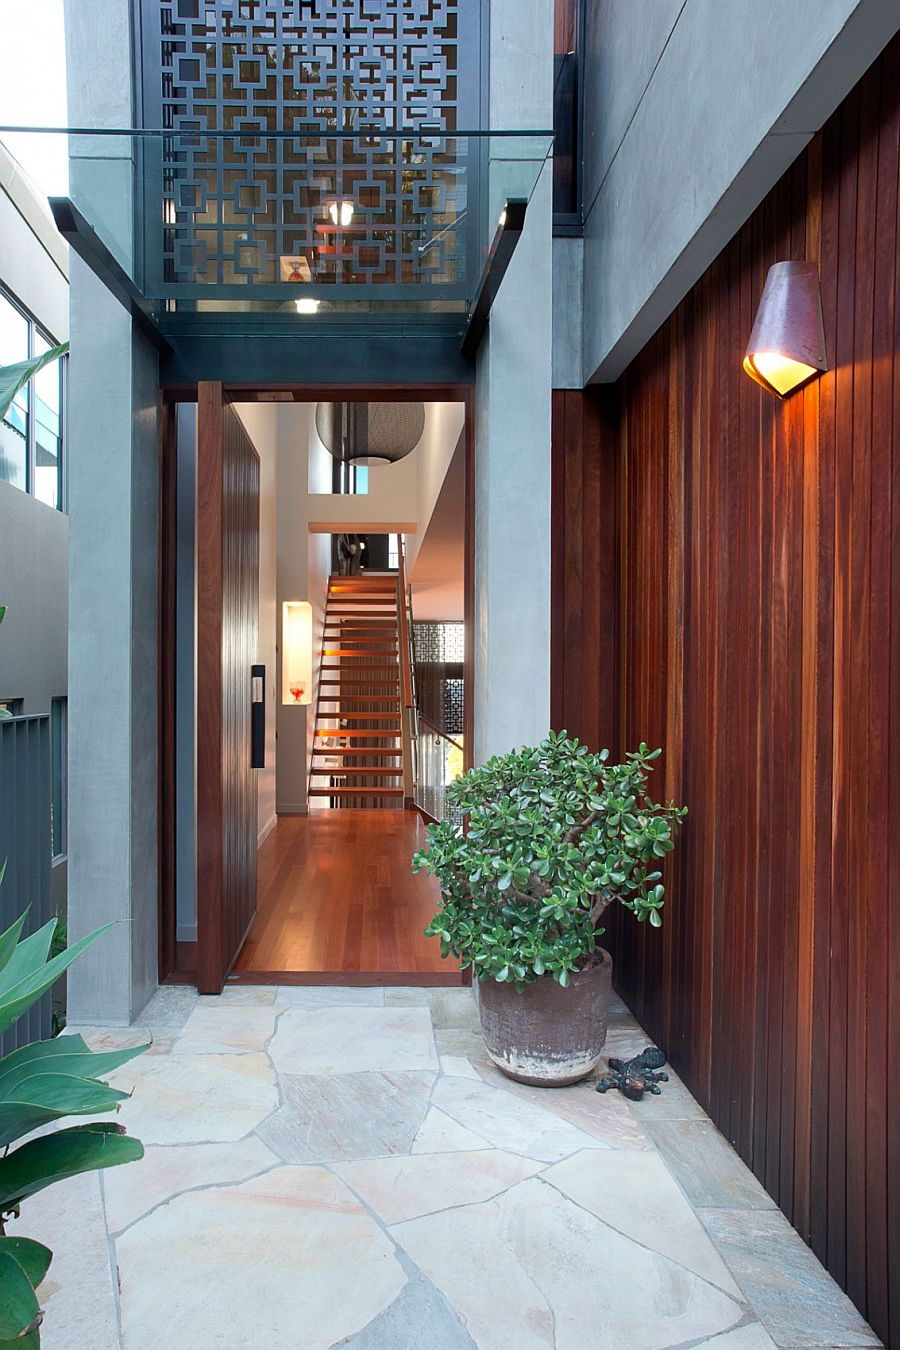 Amazing Renovation of 80s Duplex Building Caters to Chic, Modern ...